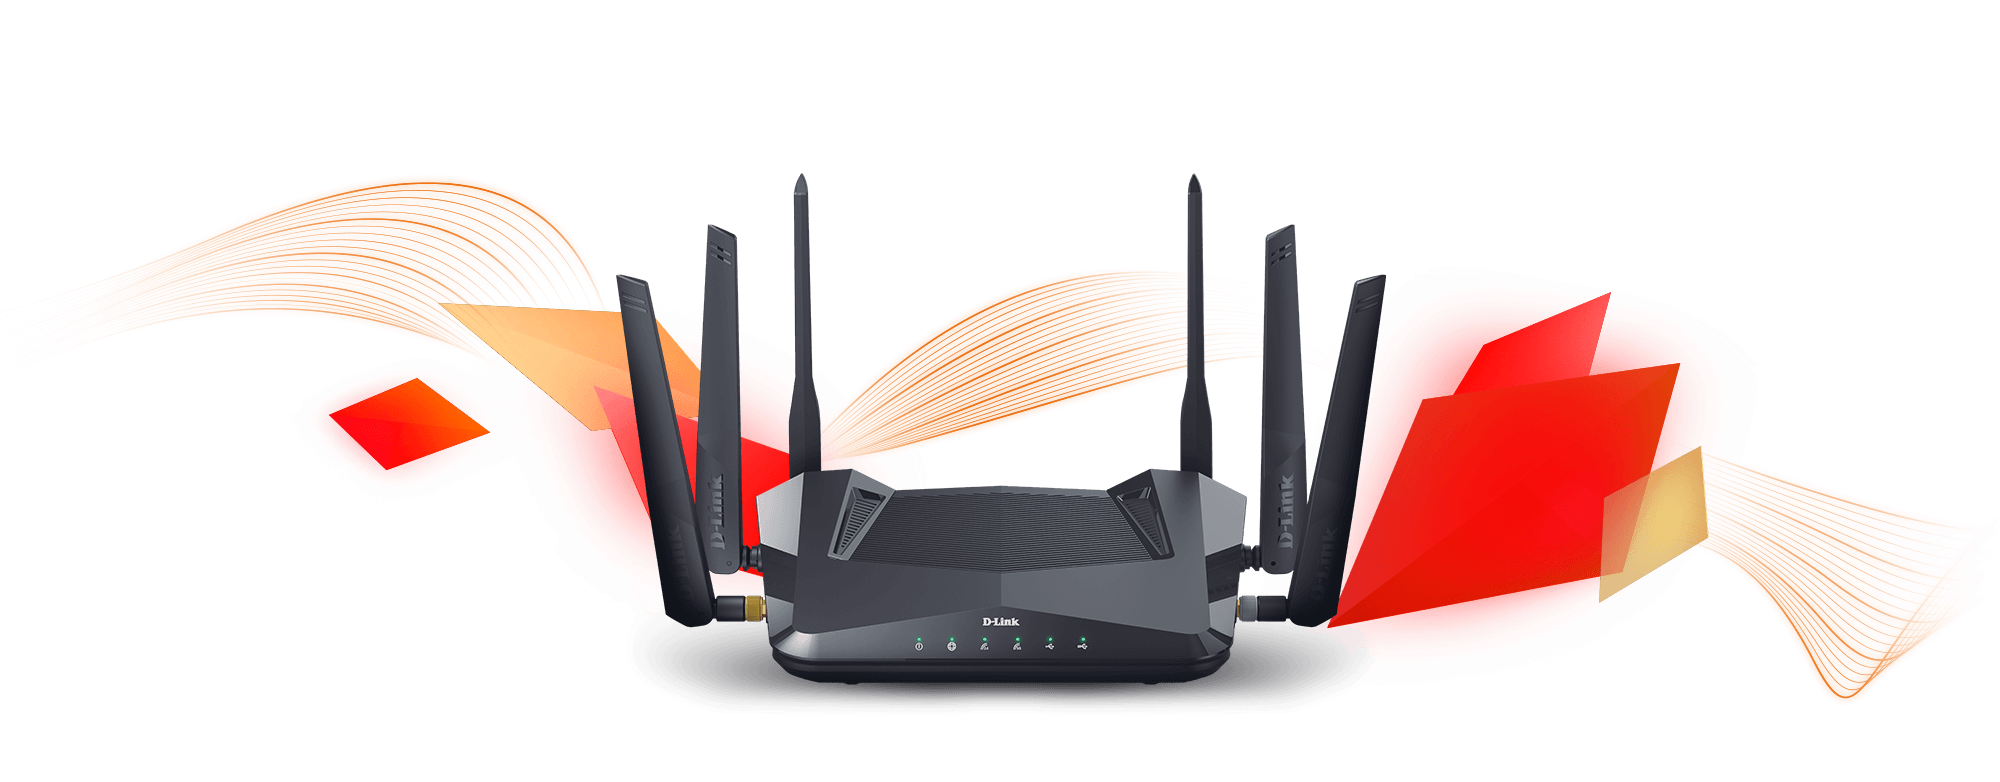 DIR-X5460 AX5400 Wi-Fi 6 Router with red diamond shapes and wireless waves